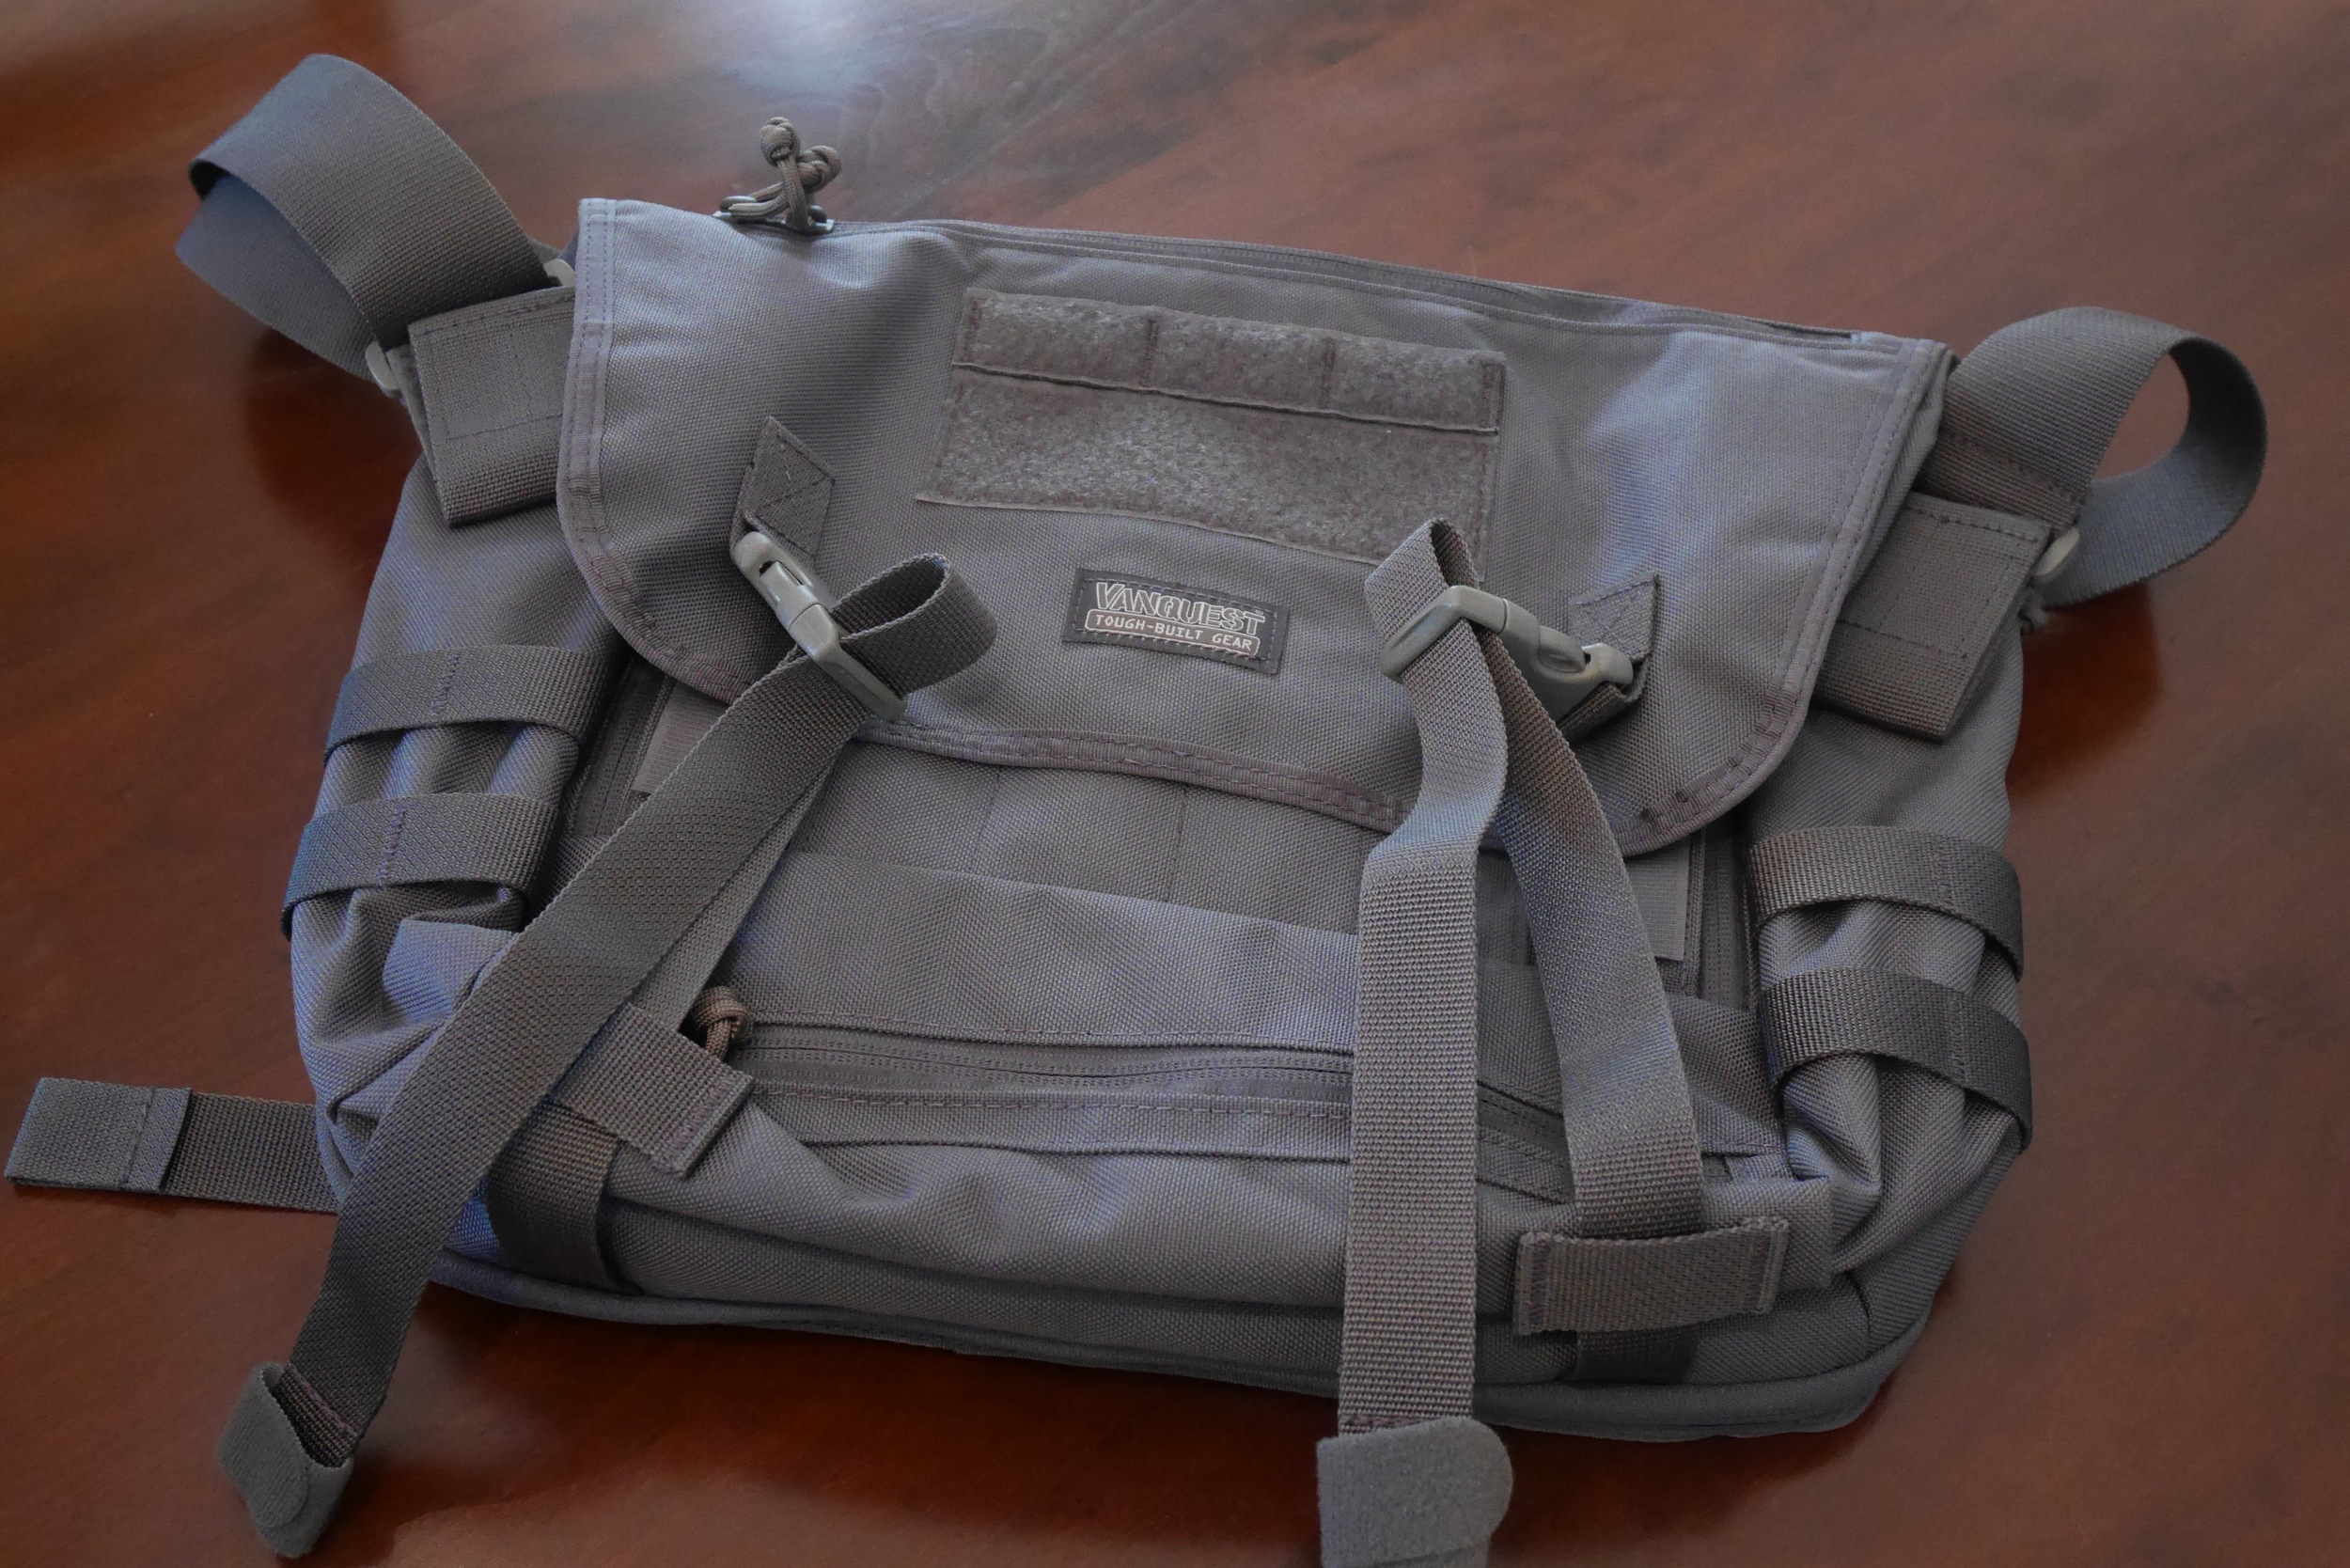 The Vanquest SKITCH-12 Messenger Bag out of the shipping box.